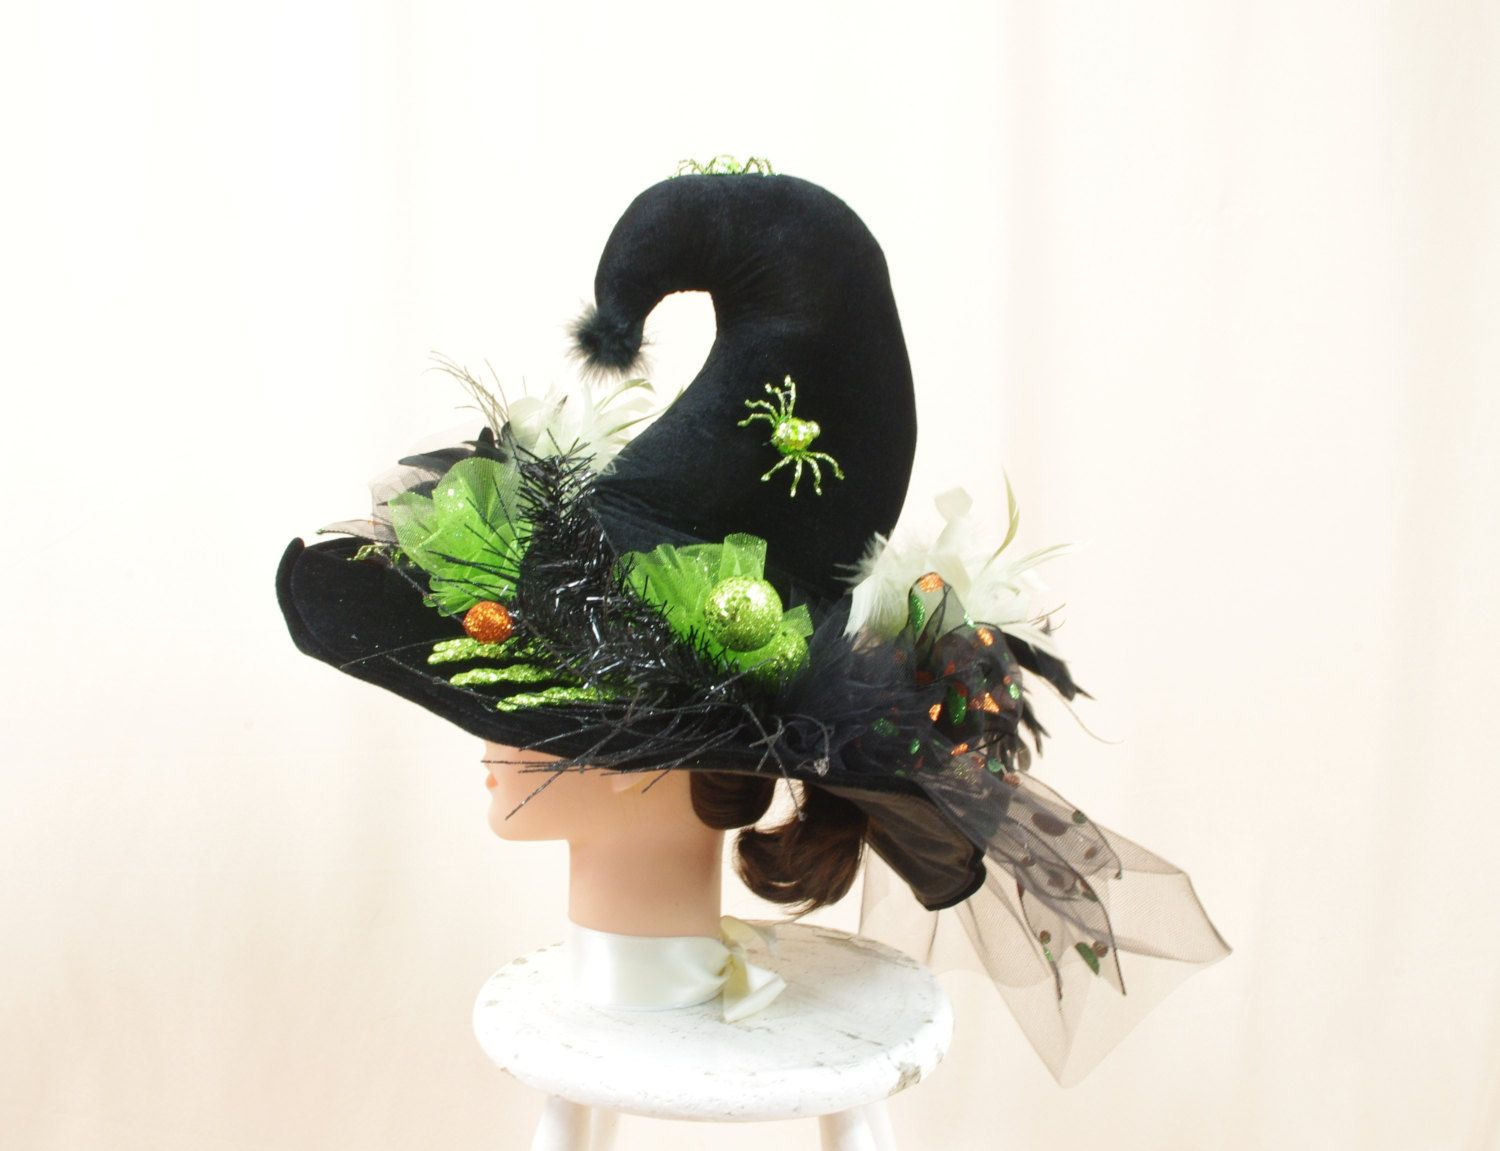 Green and Black Witch Hat * Whimsical Witch Hat * Wicked Witch Hat - Whimsical Halloween Decorations